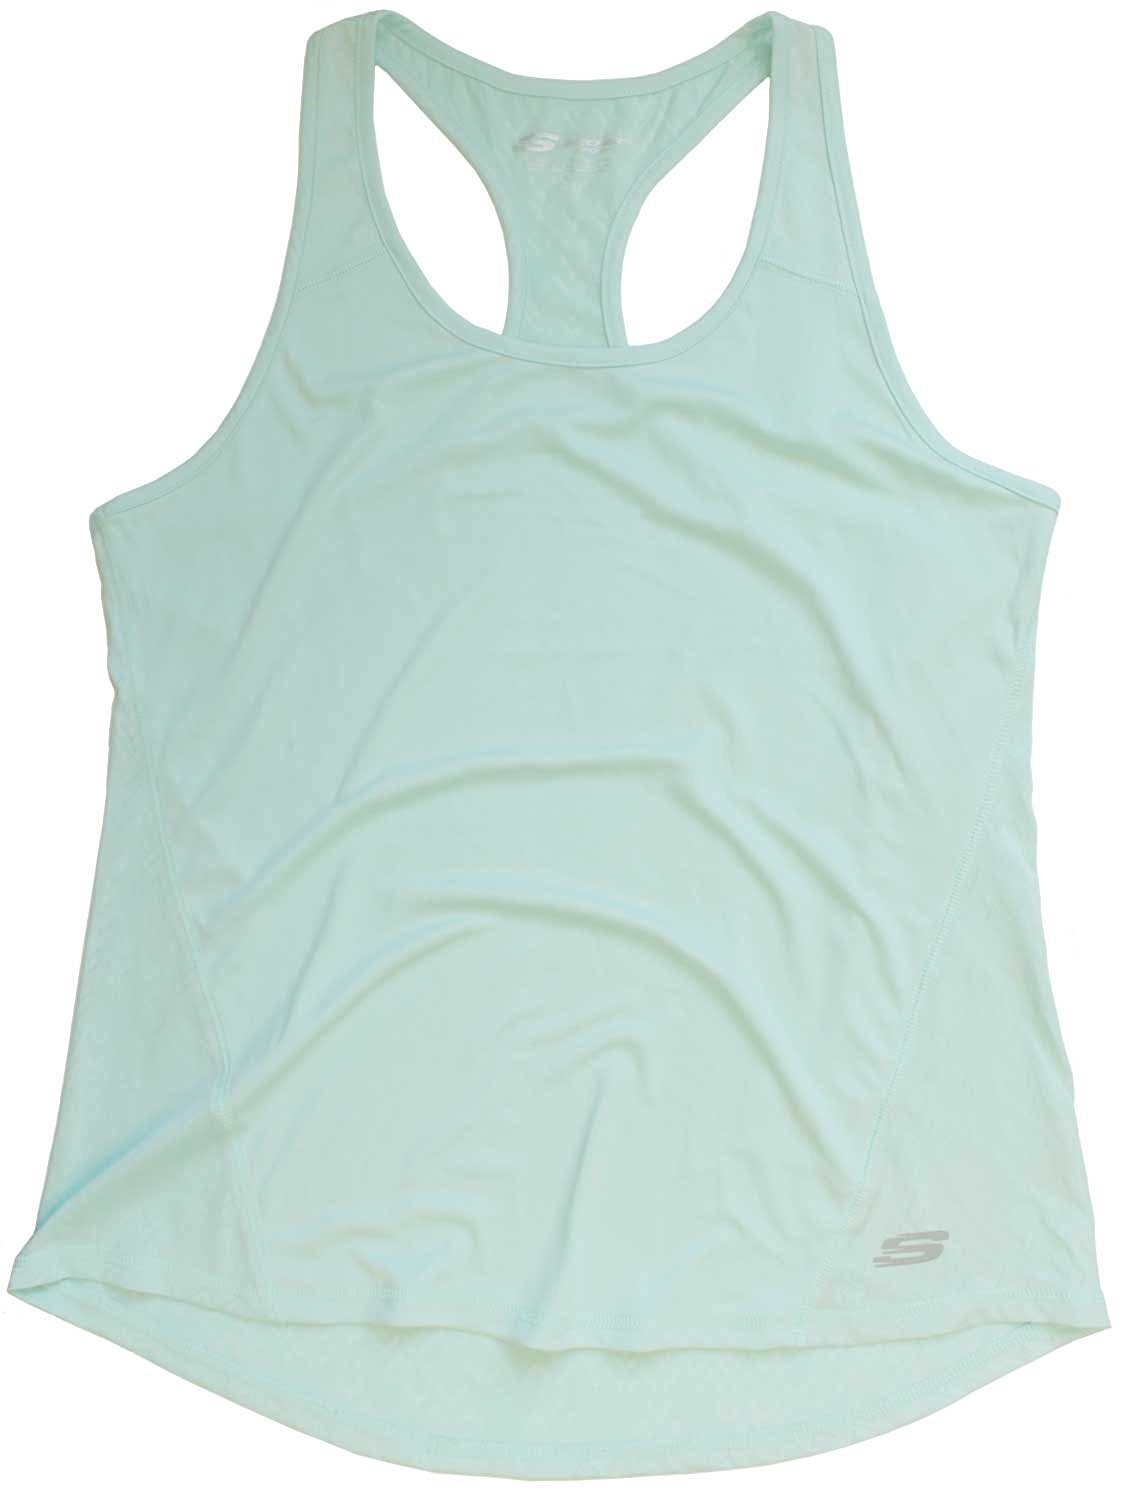 Skechers Sport Active Women's Racer-back Tank Tee Atomic Beach Glass X-Large